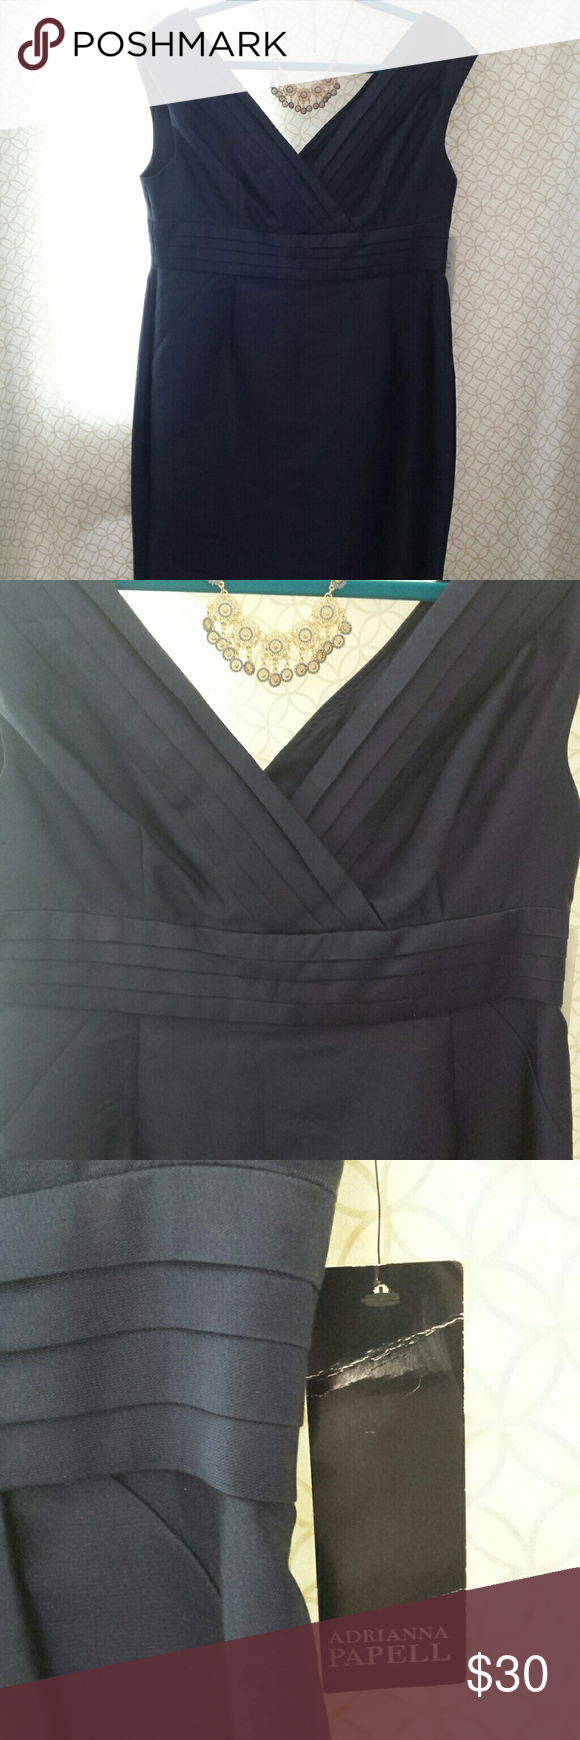 Beautiful Navy Adrianna Papell Cocktail Dress NWT Dress is a 75% silk 25% cotton blend with a flattering V neck on the front and back I  purchased from another posher but sadly it's a little too narrow through the hips :( I'm sad because the dress is just a stunner! Measurements shoulder to hem is 36 inches armpit to armpit is 18 inches hips are 19 inches Adrianna Papell Dresses